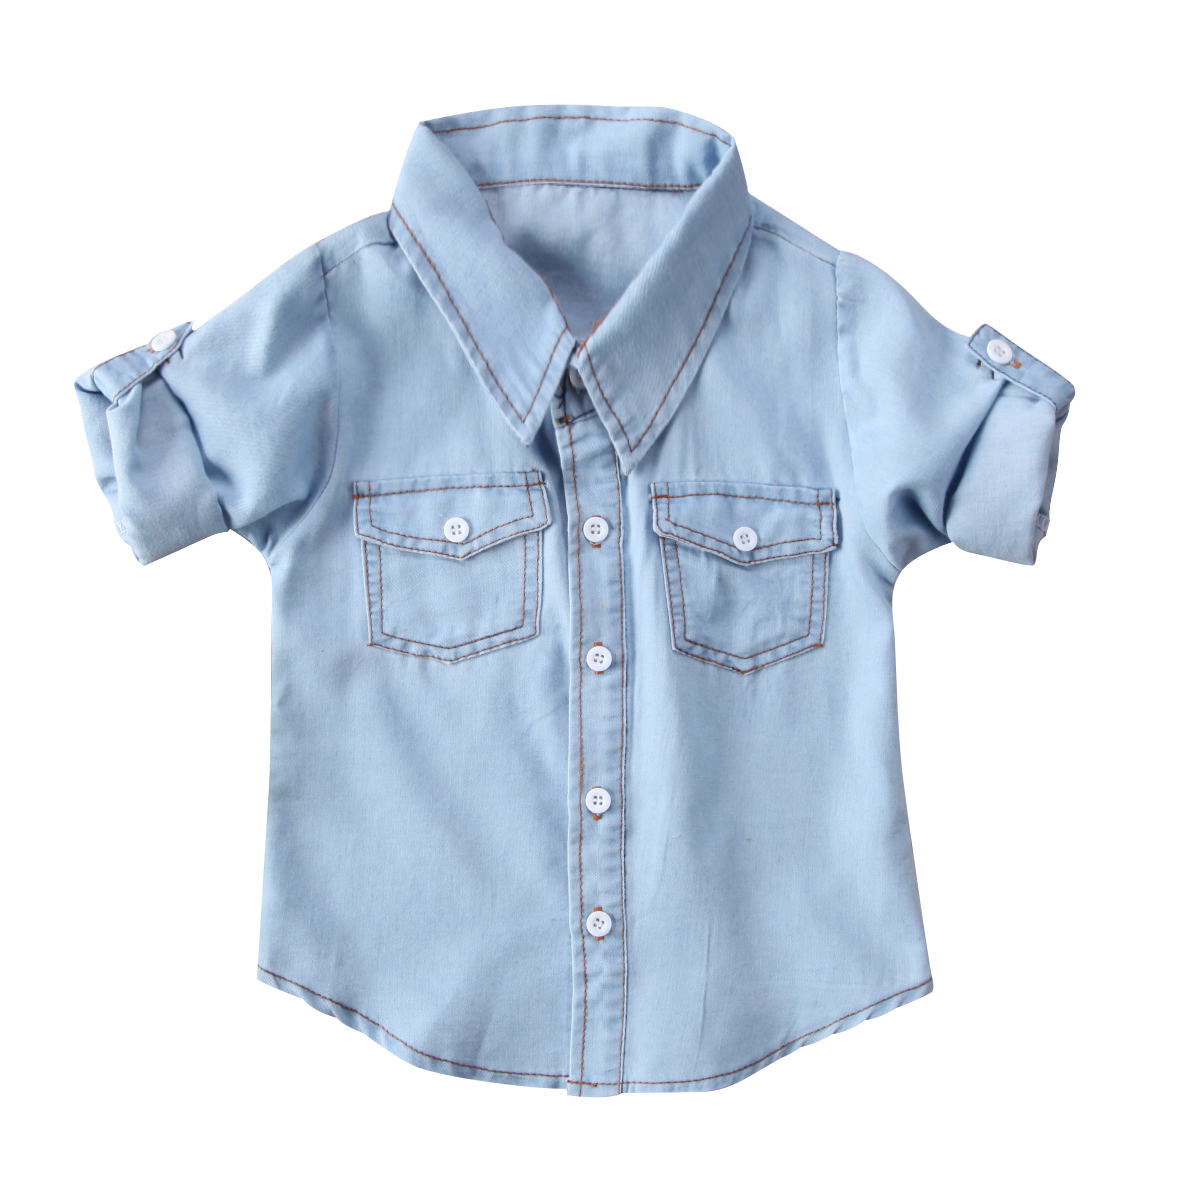 Shirt Waistcoat Denim Half-Sleeves Gentleman Toddler Baby Kids Cute Unisex Outfits